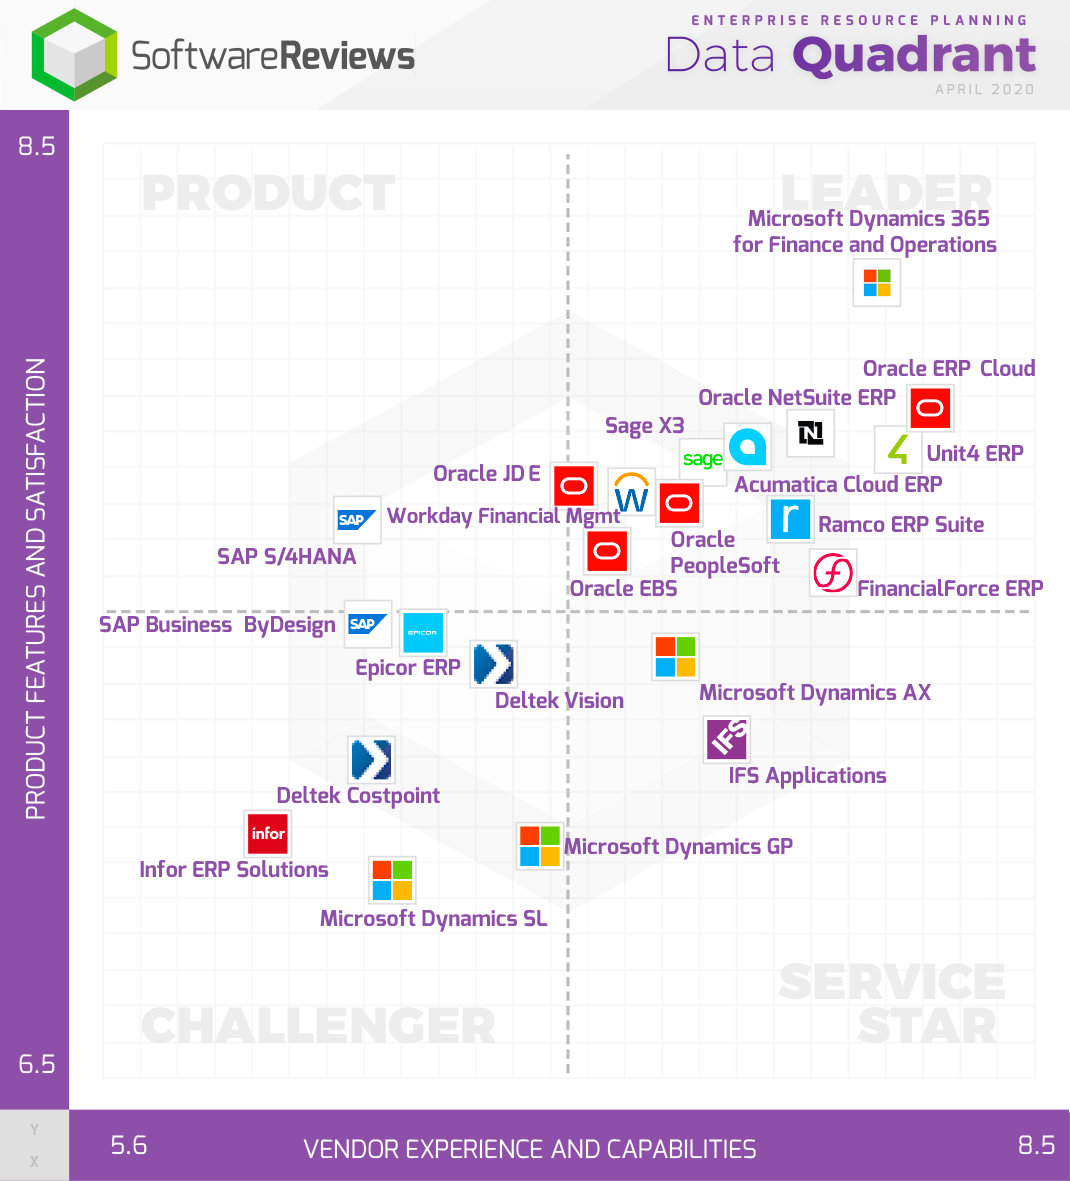 Enterprise Resource Planning Data Quadrant